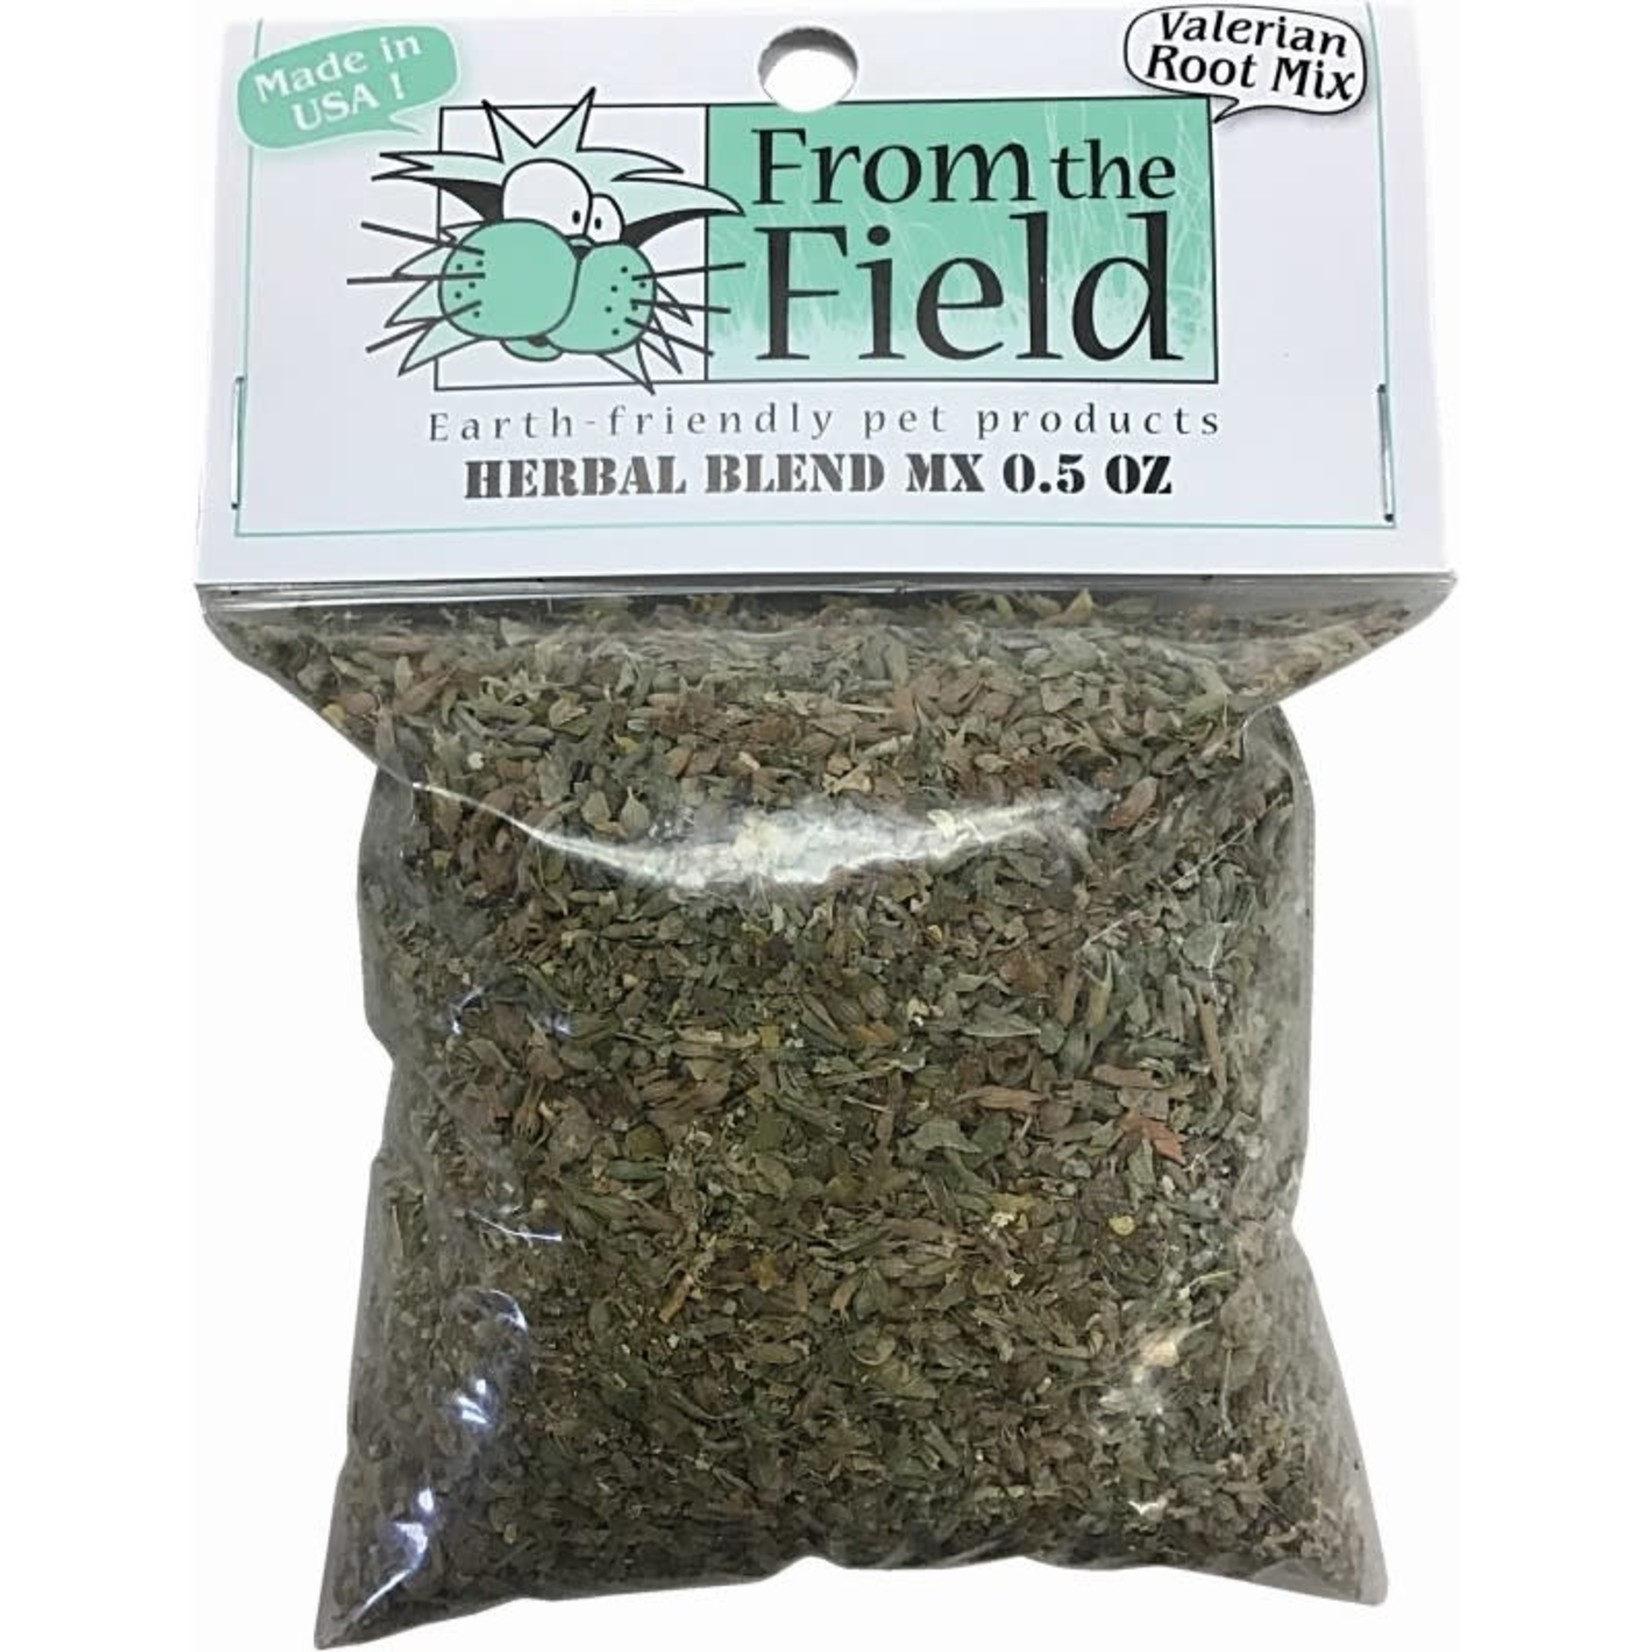 From The Field From The Field Herbal Blend Catnip & Valerian Root .5 OZ Bag